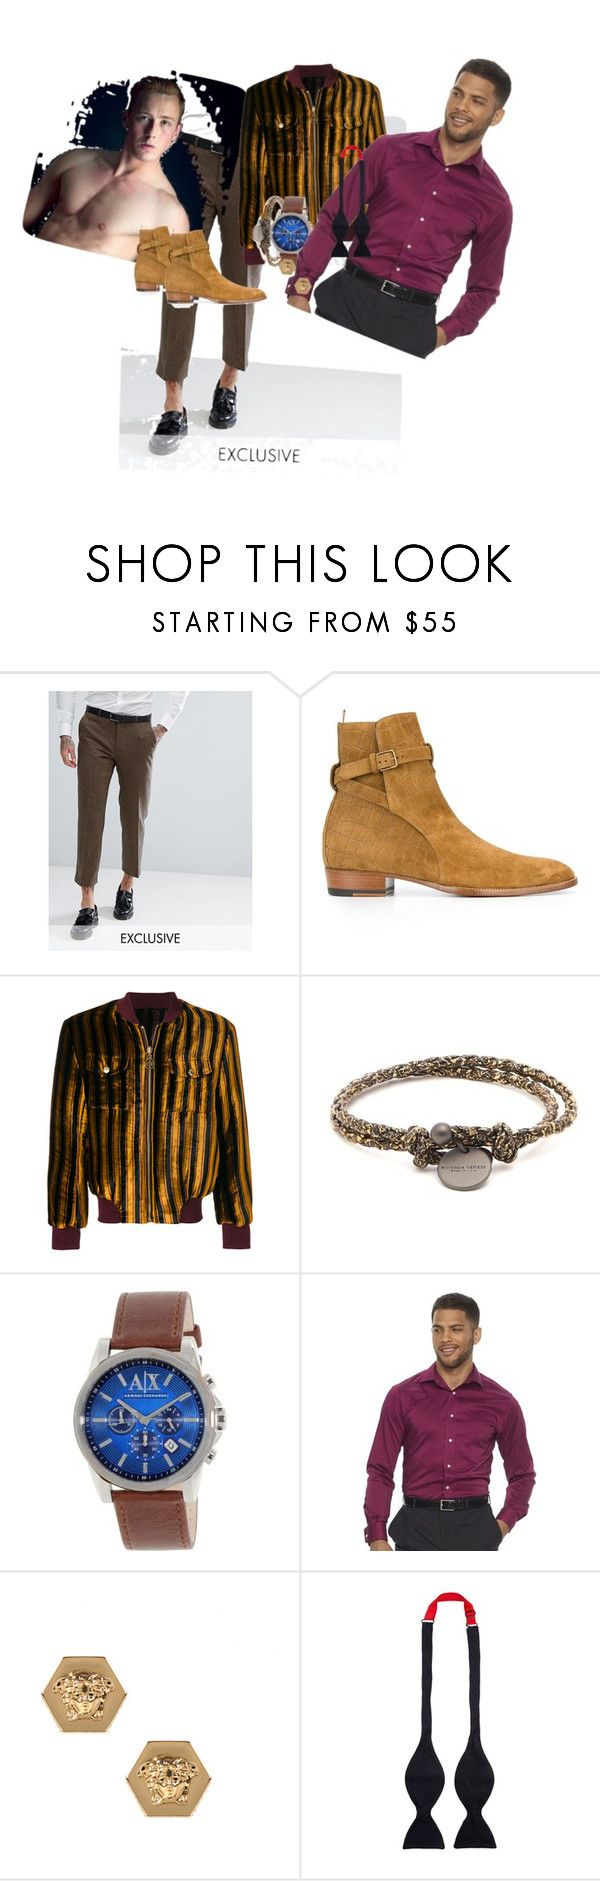 """ColorS and style"" by betty-verlinden on Polyvore featuring Heart & Dagger, Yves Saint Laurent, GCDS, Bottega Veneta, Armani Exchange, Chaps, Versace, Turnbull & Asser, men's fashion en menswear"